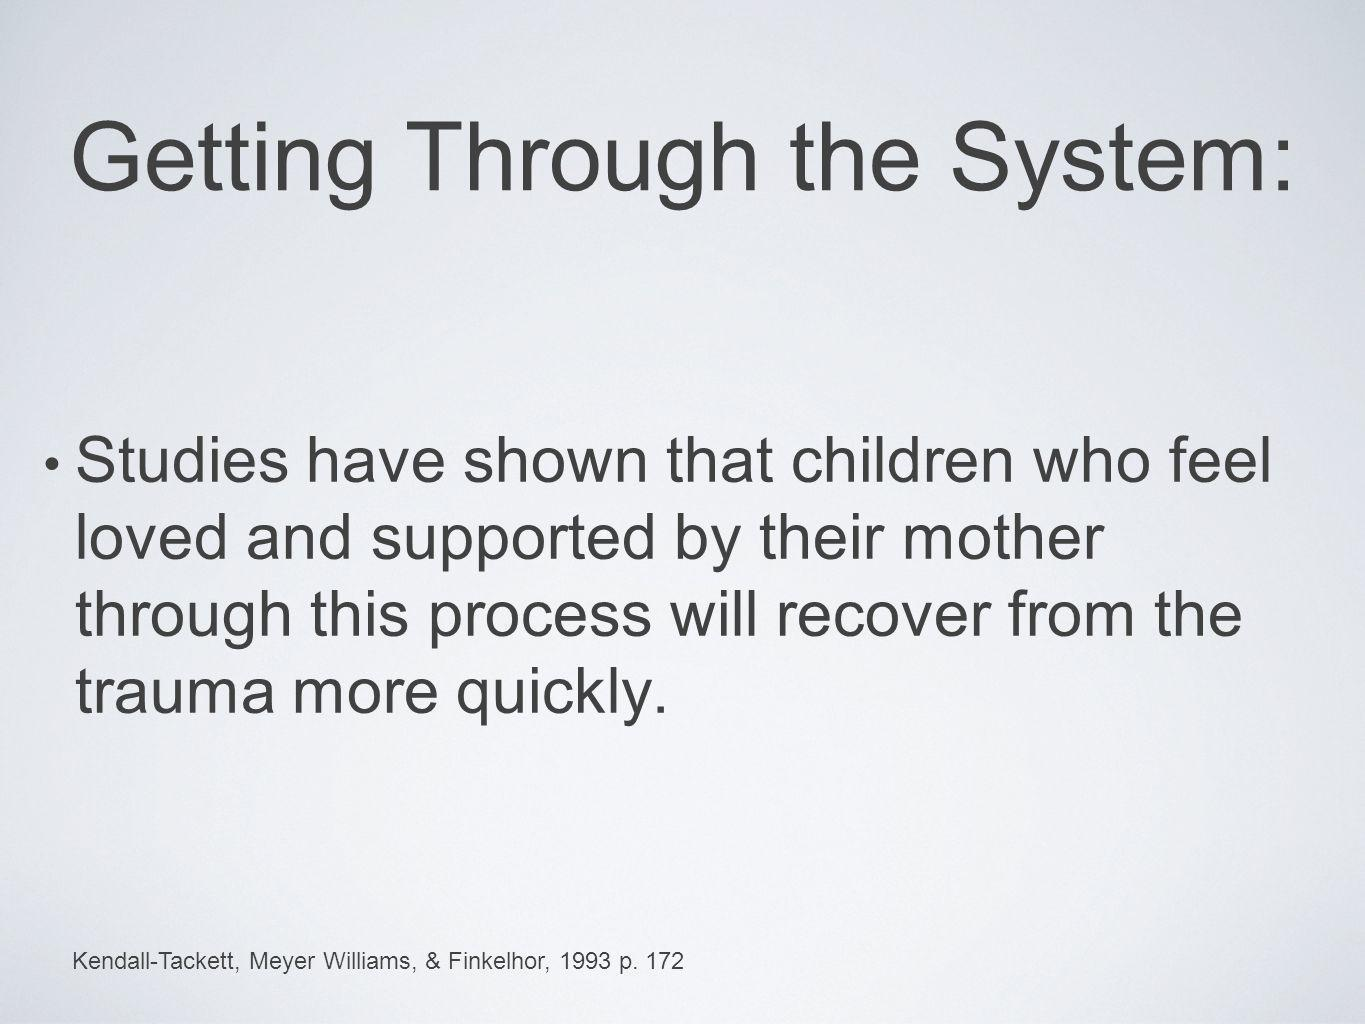 Getting Through the System: Studies have shown that children who feel loved and supported by their mother through this process will recover from the t